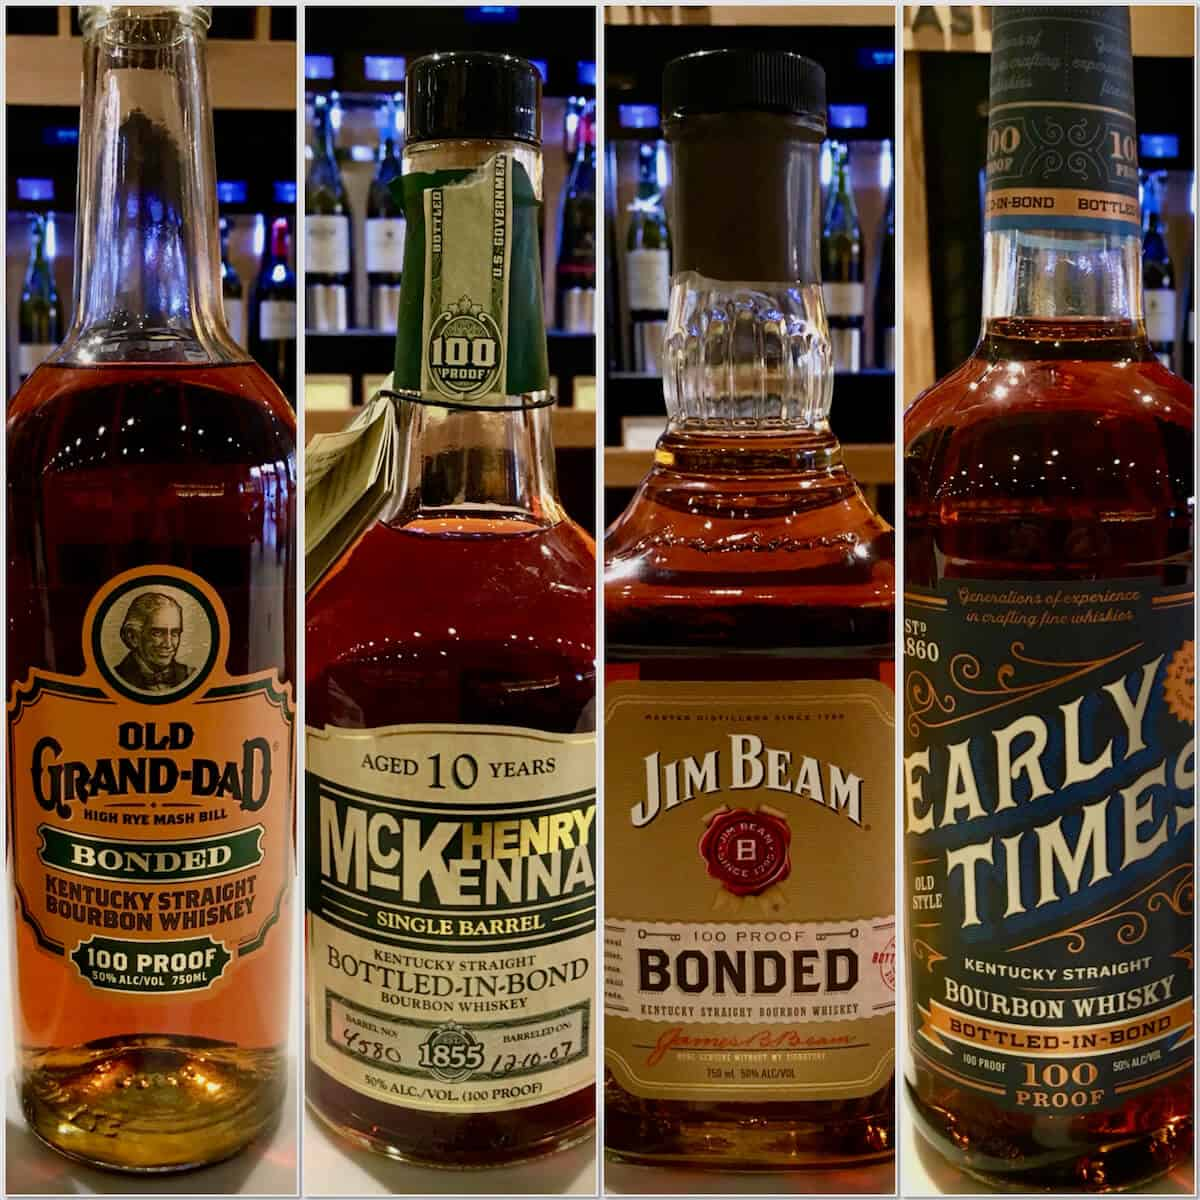 Collage of Old Grand-Dad, Henry McKenna, Jim Beam Bonded, Early Times in bottles.